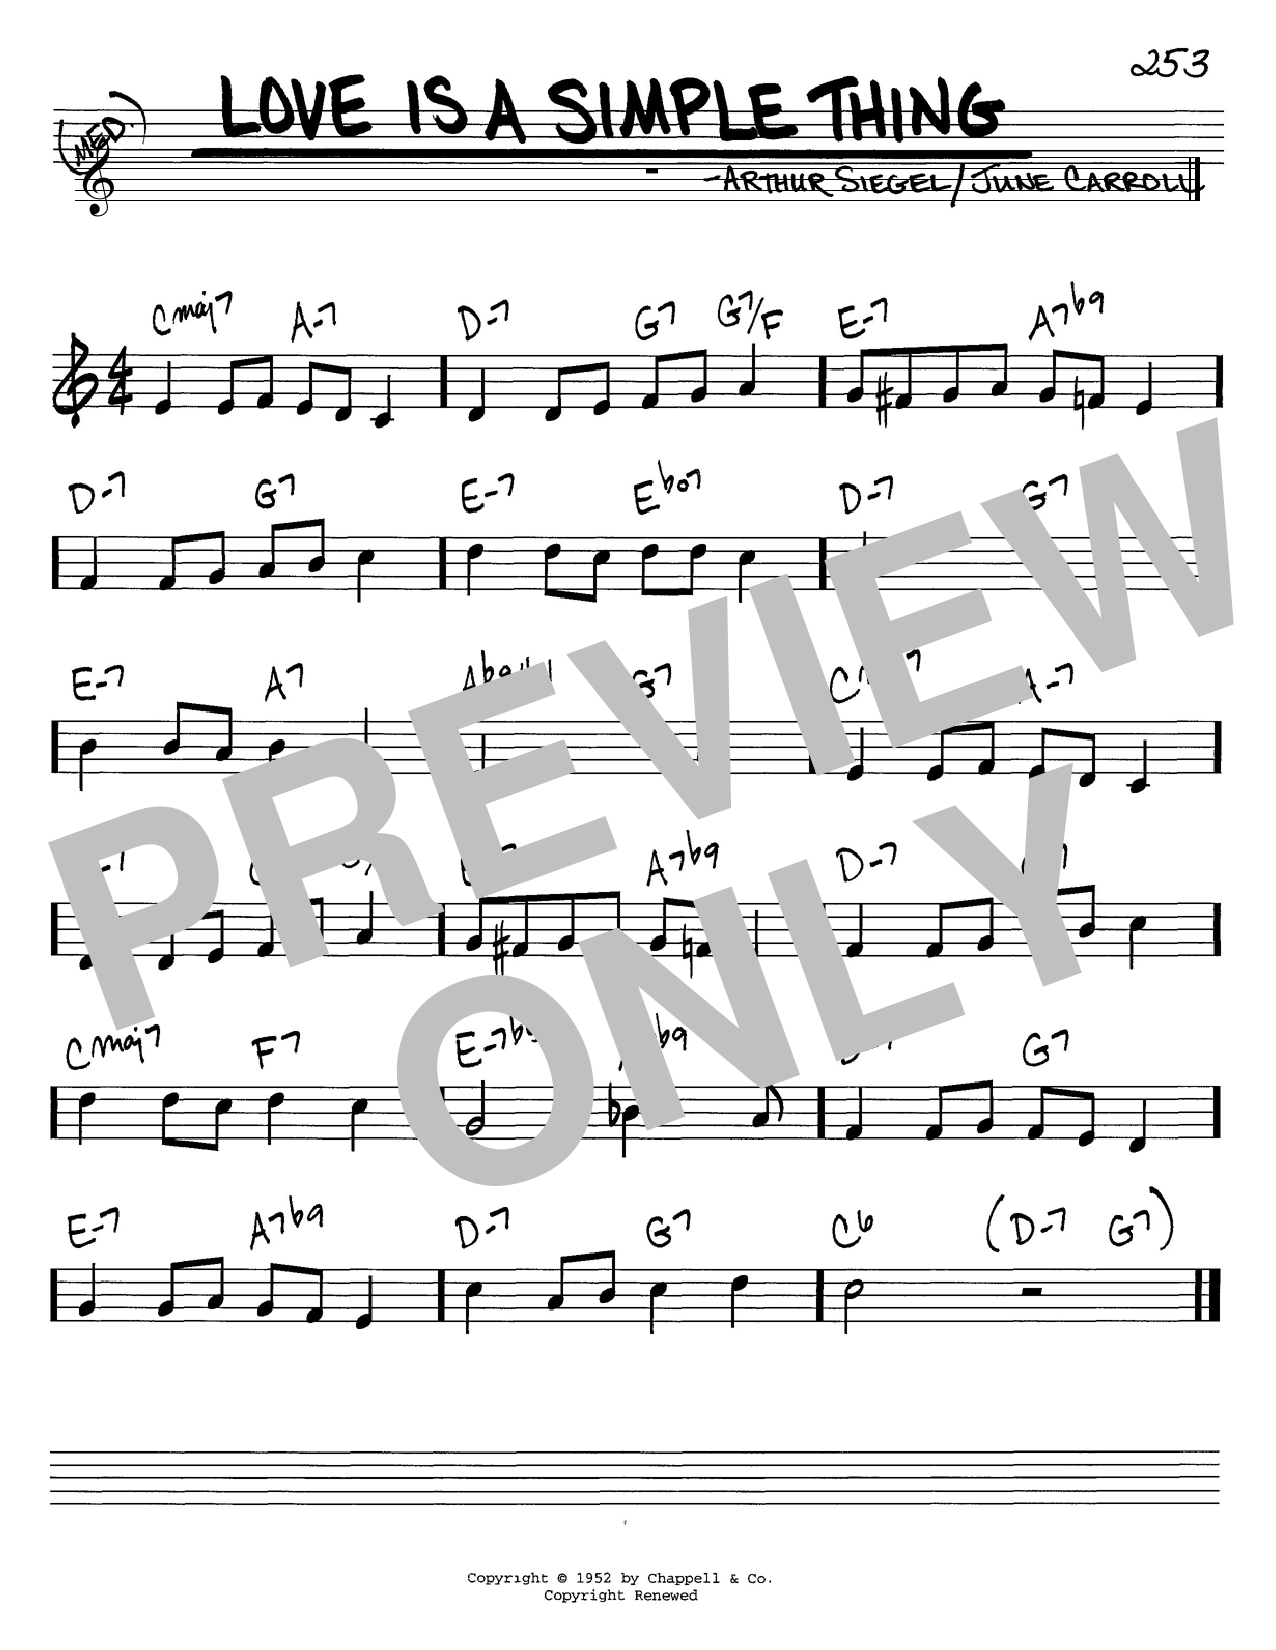 Love Is A Simple Thing sheet music